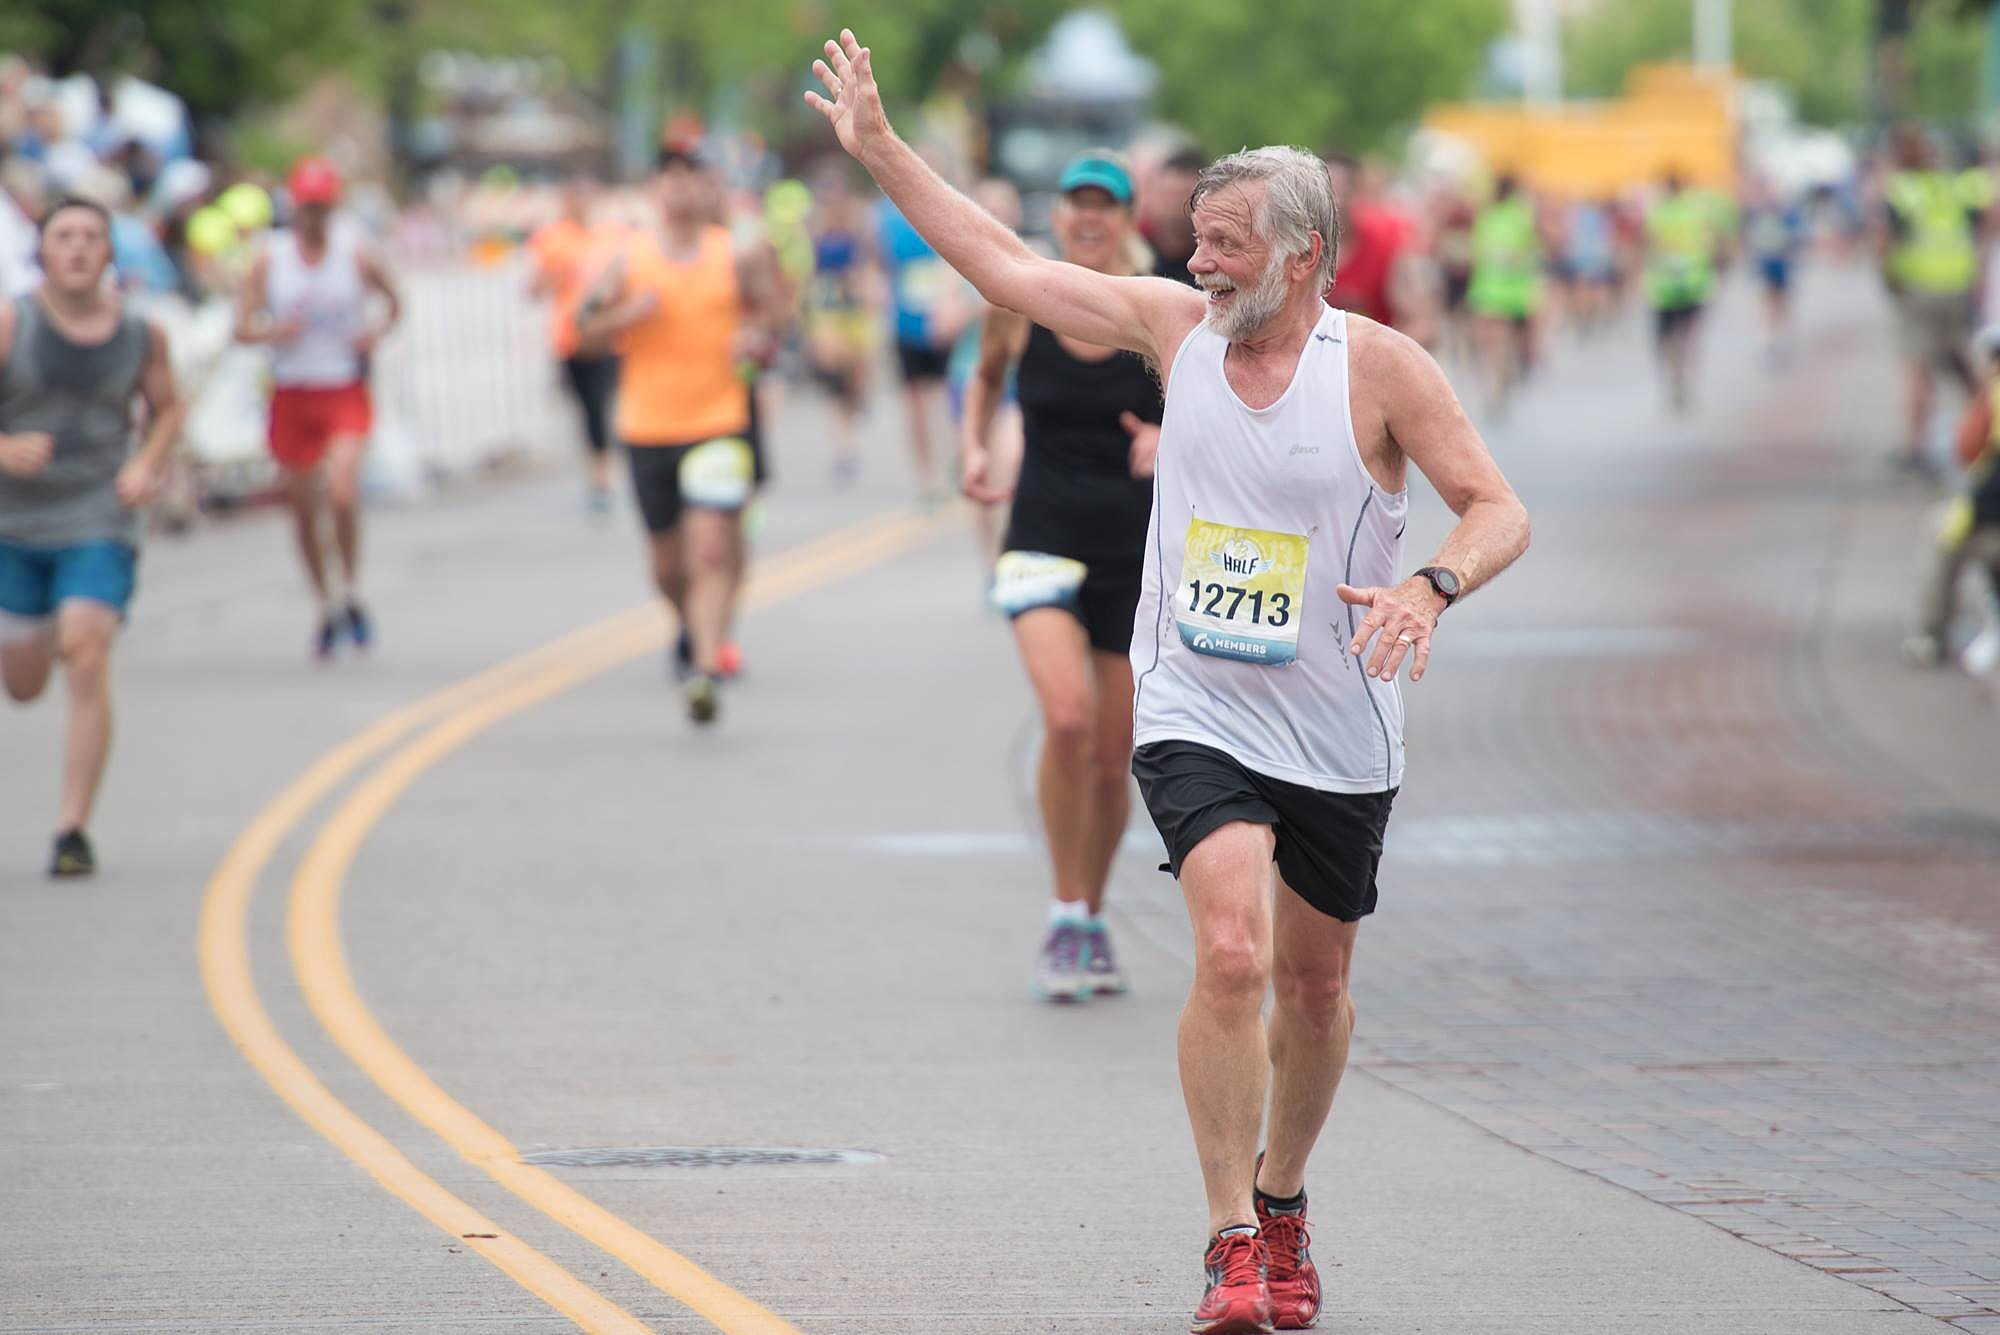 You Can Track A Runner On Grandma's Marathon Half Or Full Course